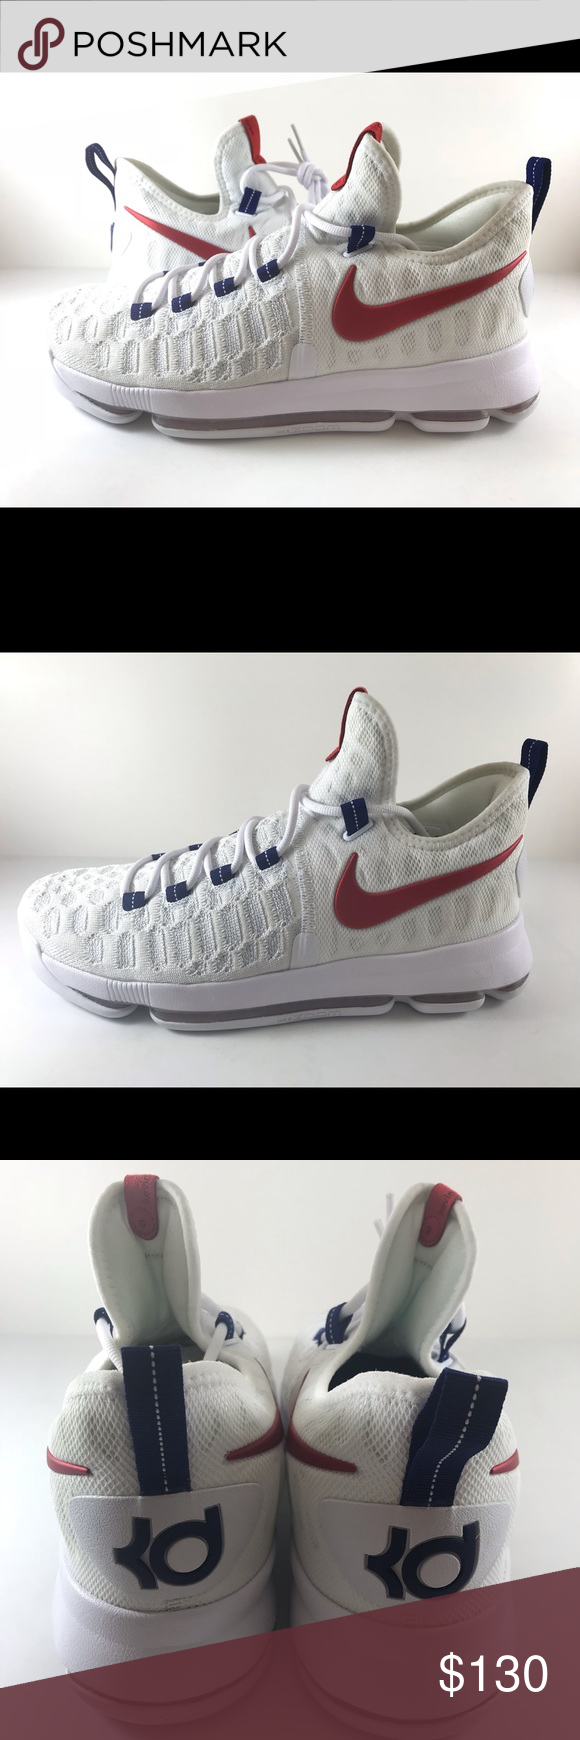 e47b9f8d89b Nike KD 9 Independence Day USA 843392-160 Mens Nike KD 9 Independence Day  USA 843392-160 Men s Size 10 Nike Shoes Athletic Shoes